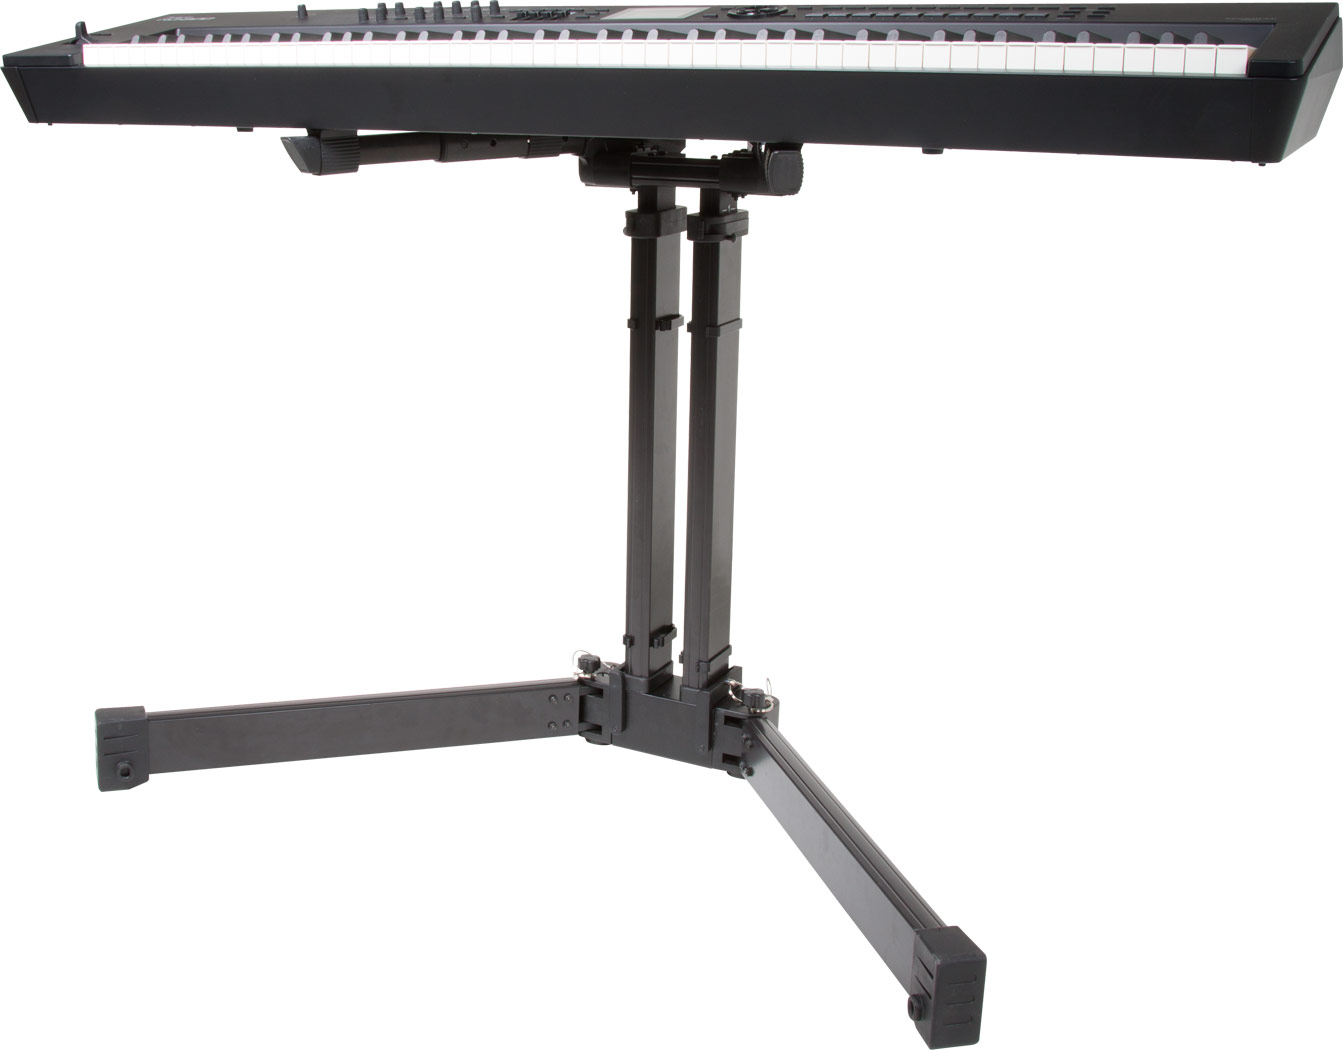 roland ks pro k pro folding keyboard stand. Black Bedroom Furniture Sets. Home Design Ideas